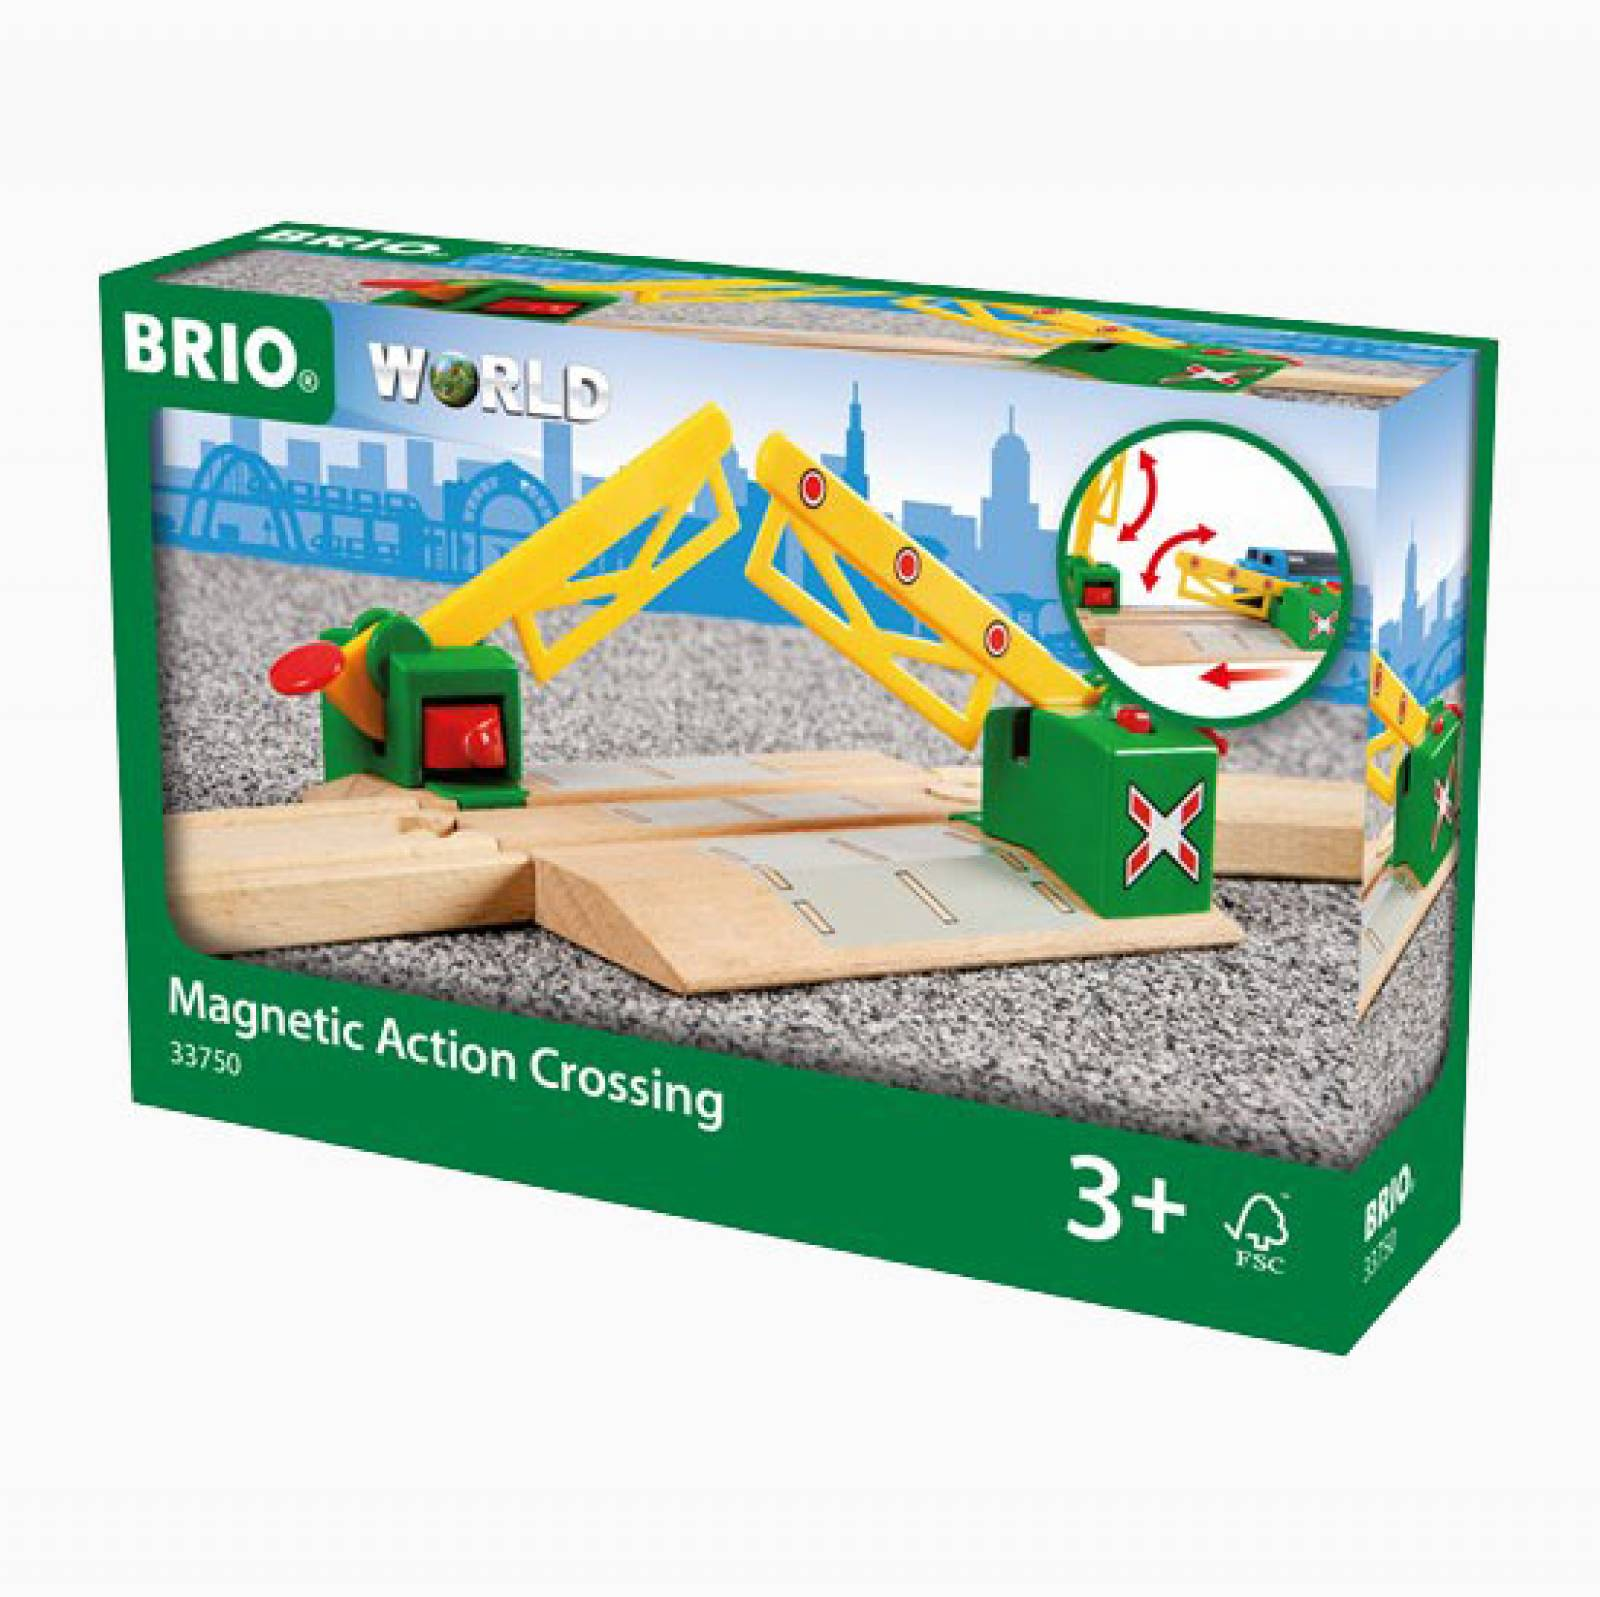 Magnetic Action Crossing BRIO Wooden Railway Age 3+ thumbnails